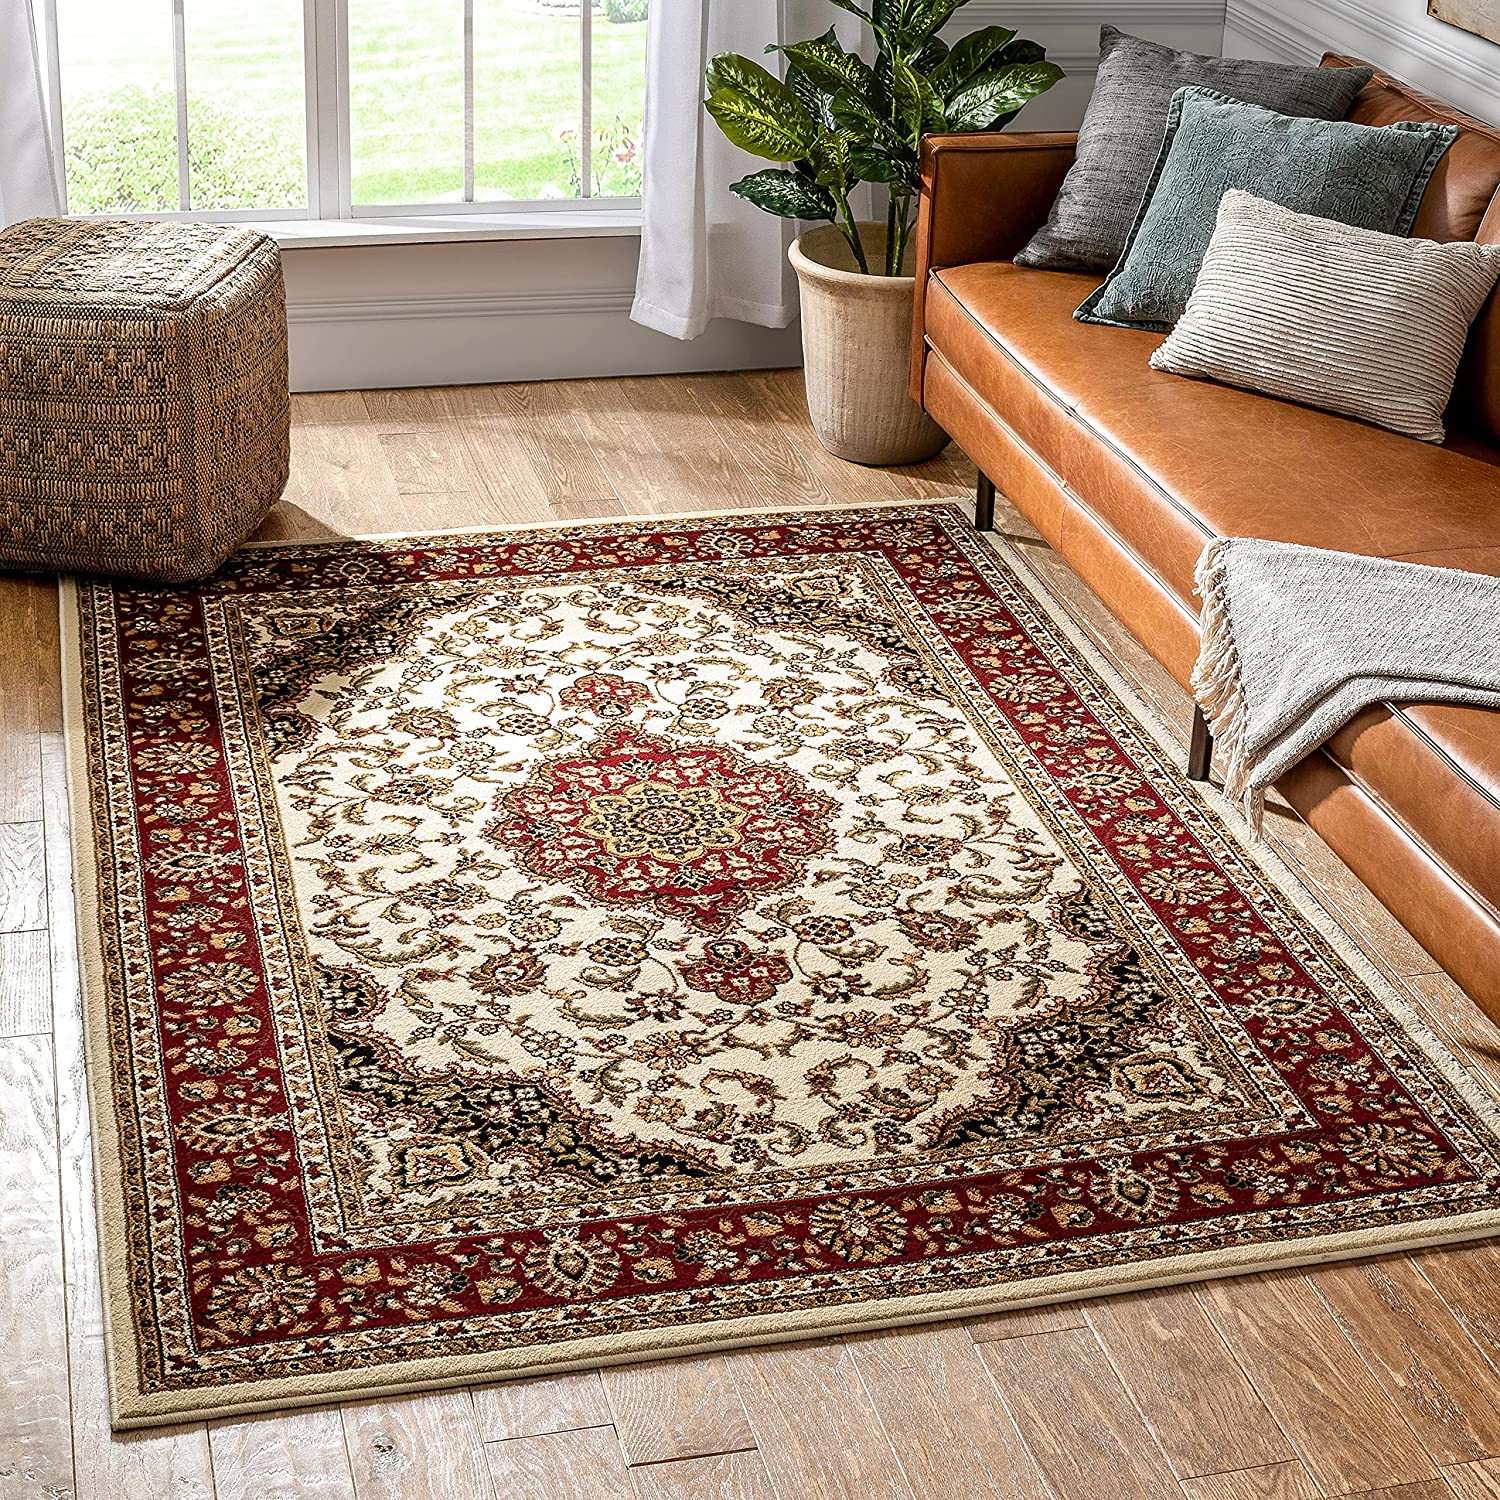 Noble Medallion Ivory Persian Floral Oriental Formal Traditional Area Rug 8x10 8x11 ( 7'10